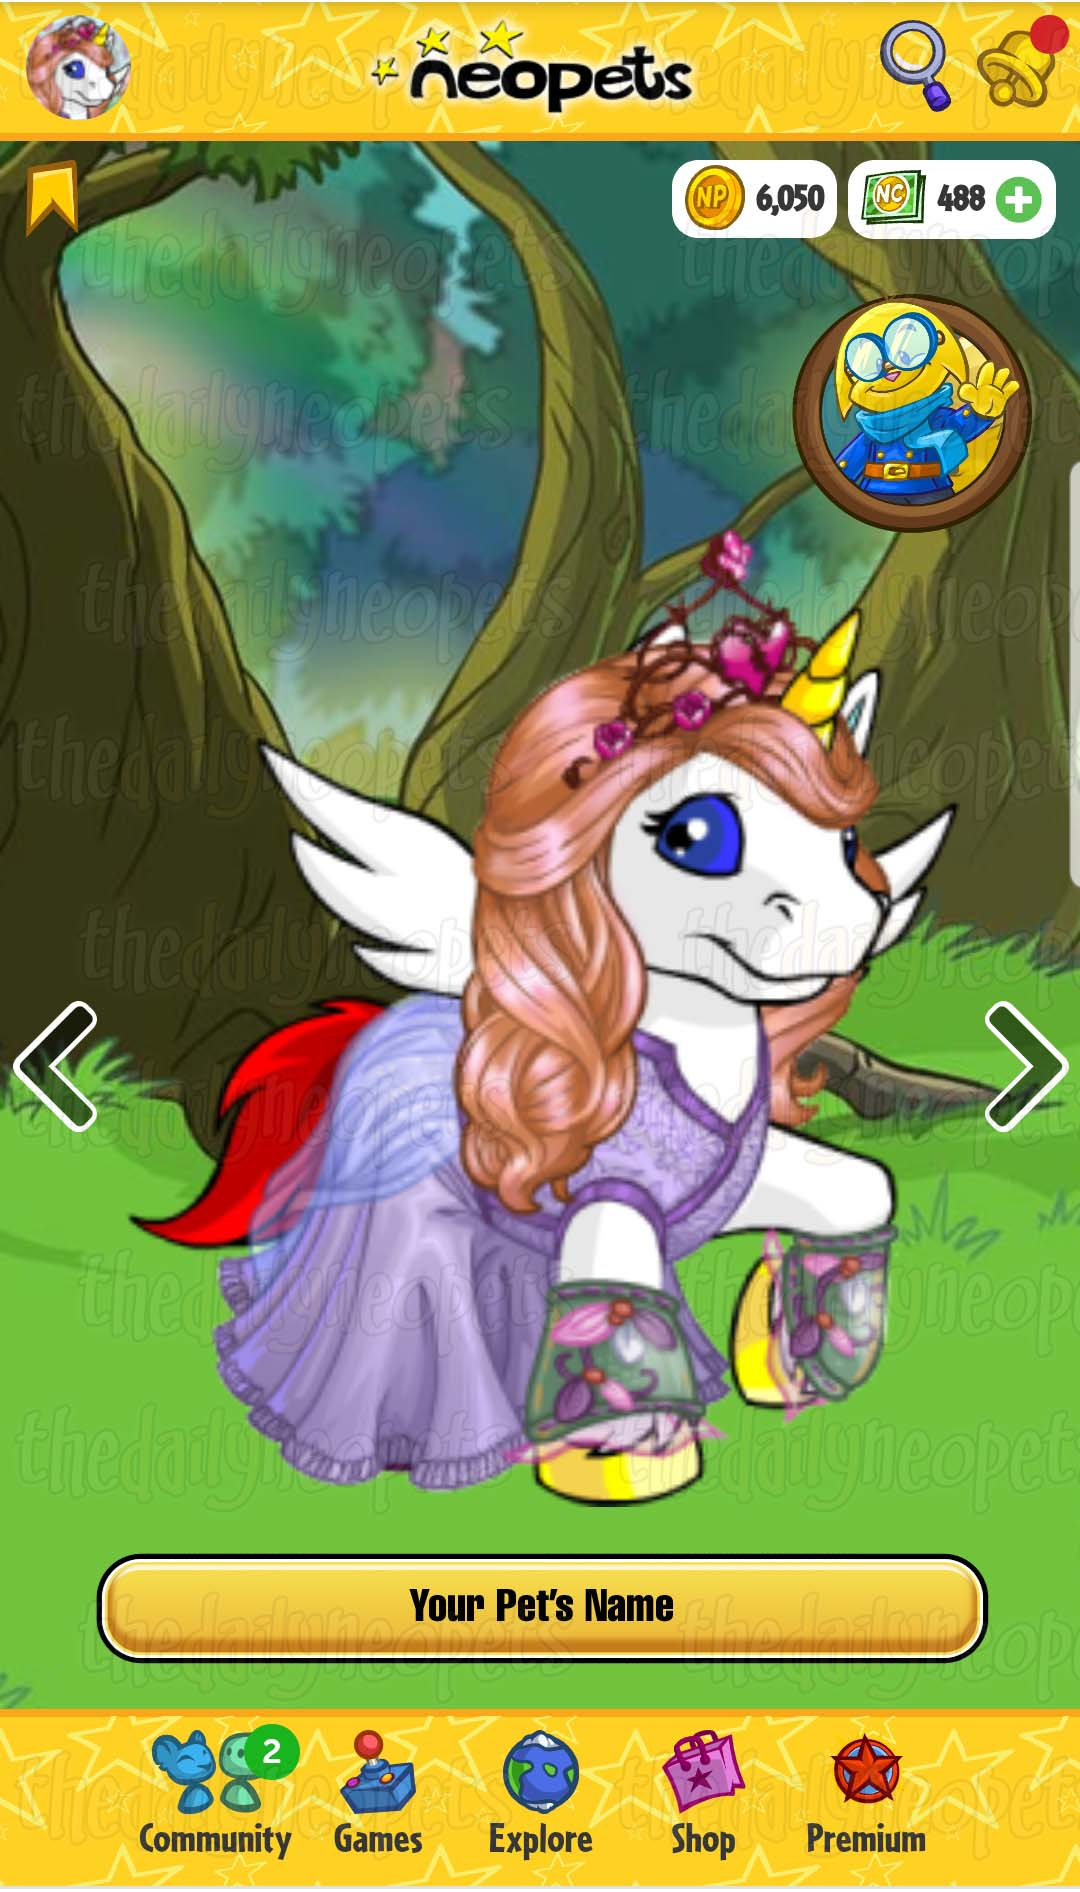 Neopets Mobile Site Beta The Daily Neopets